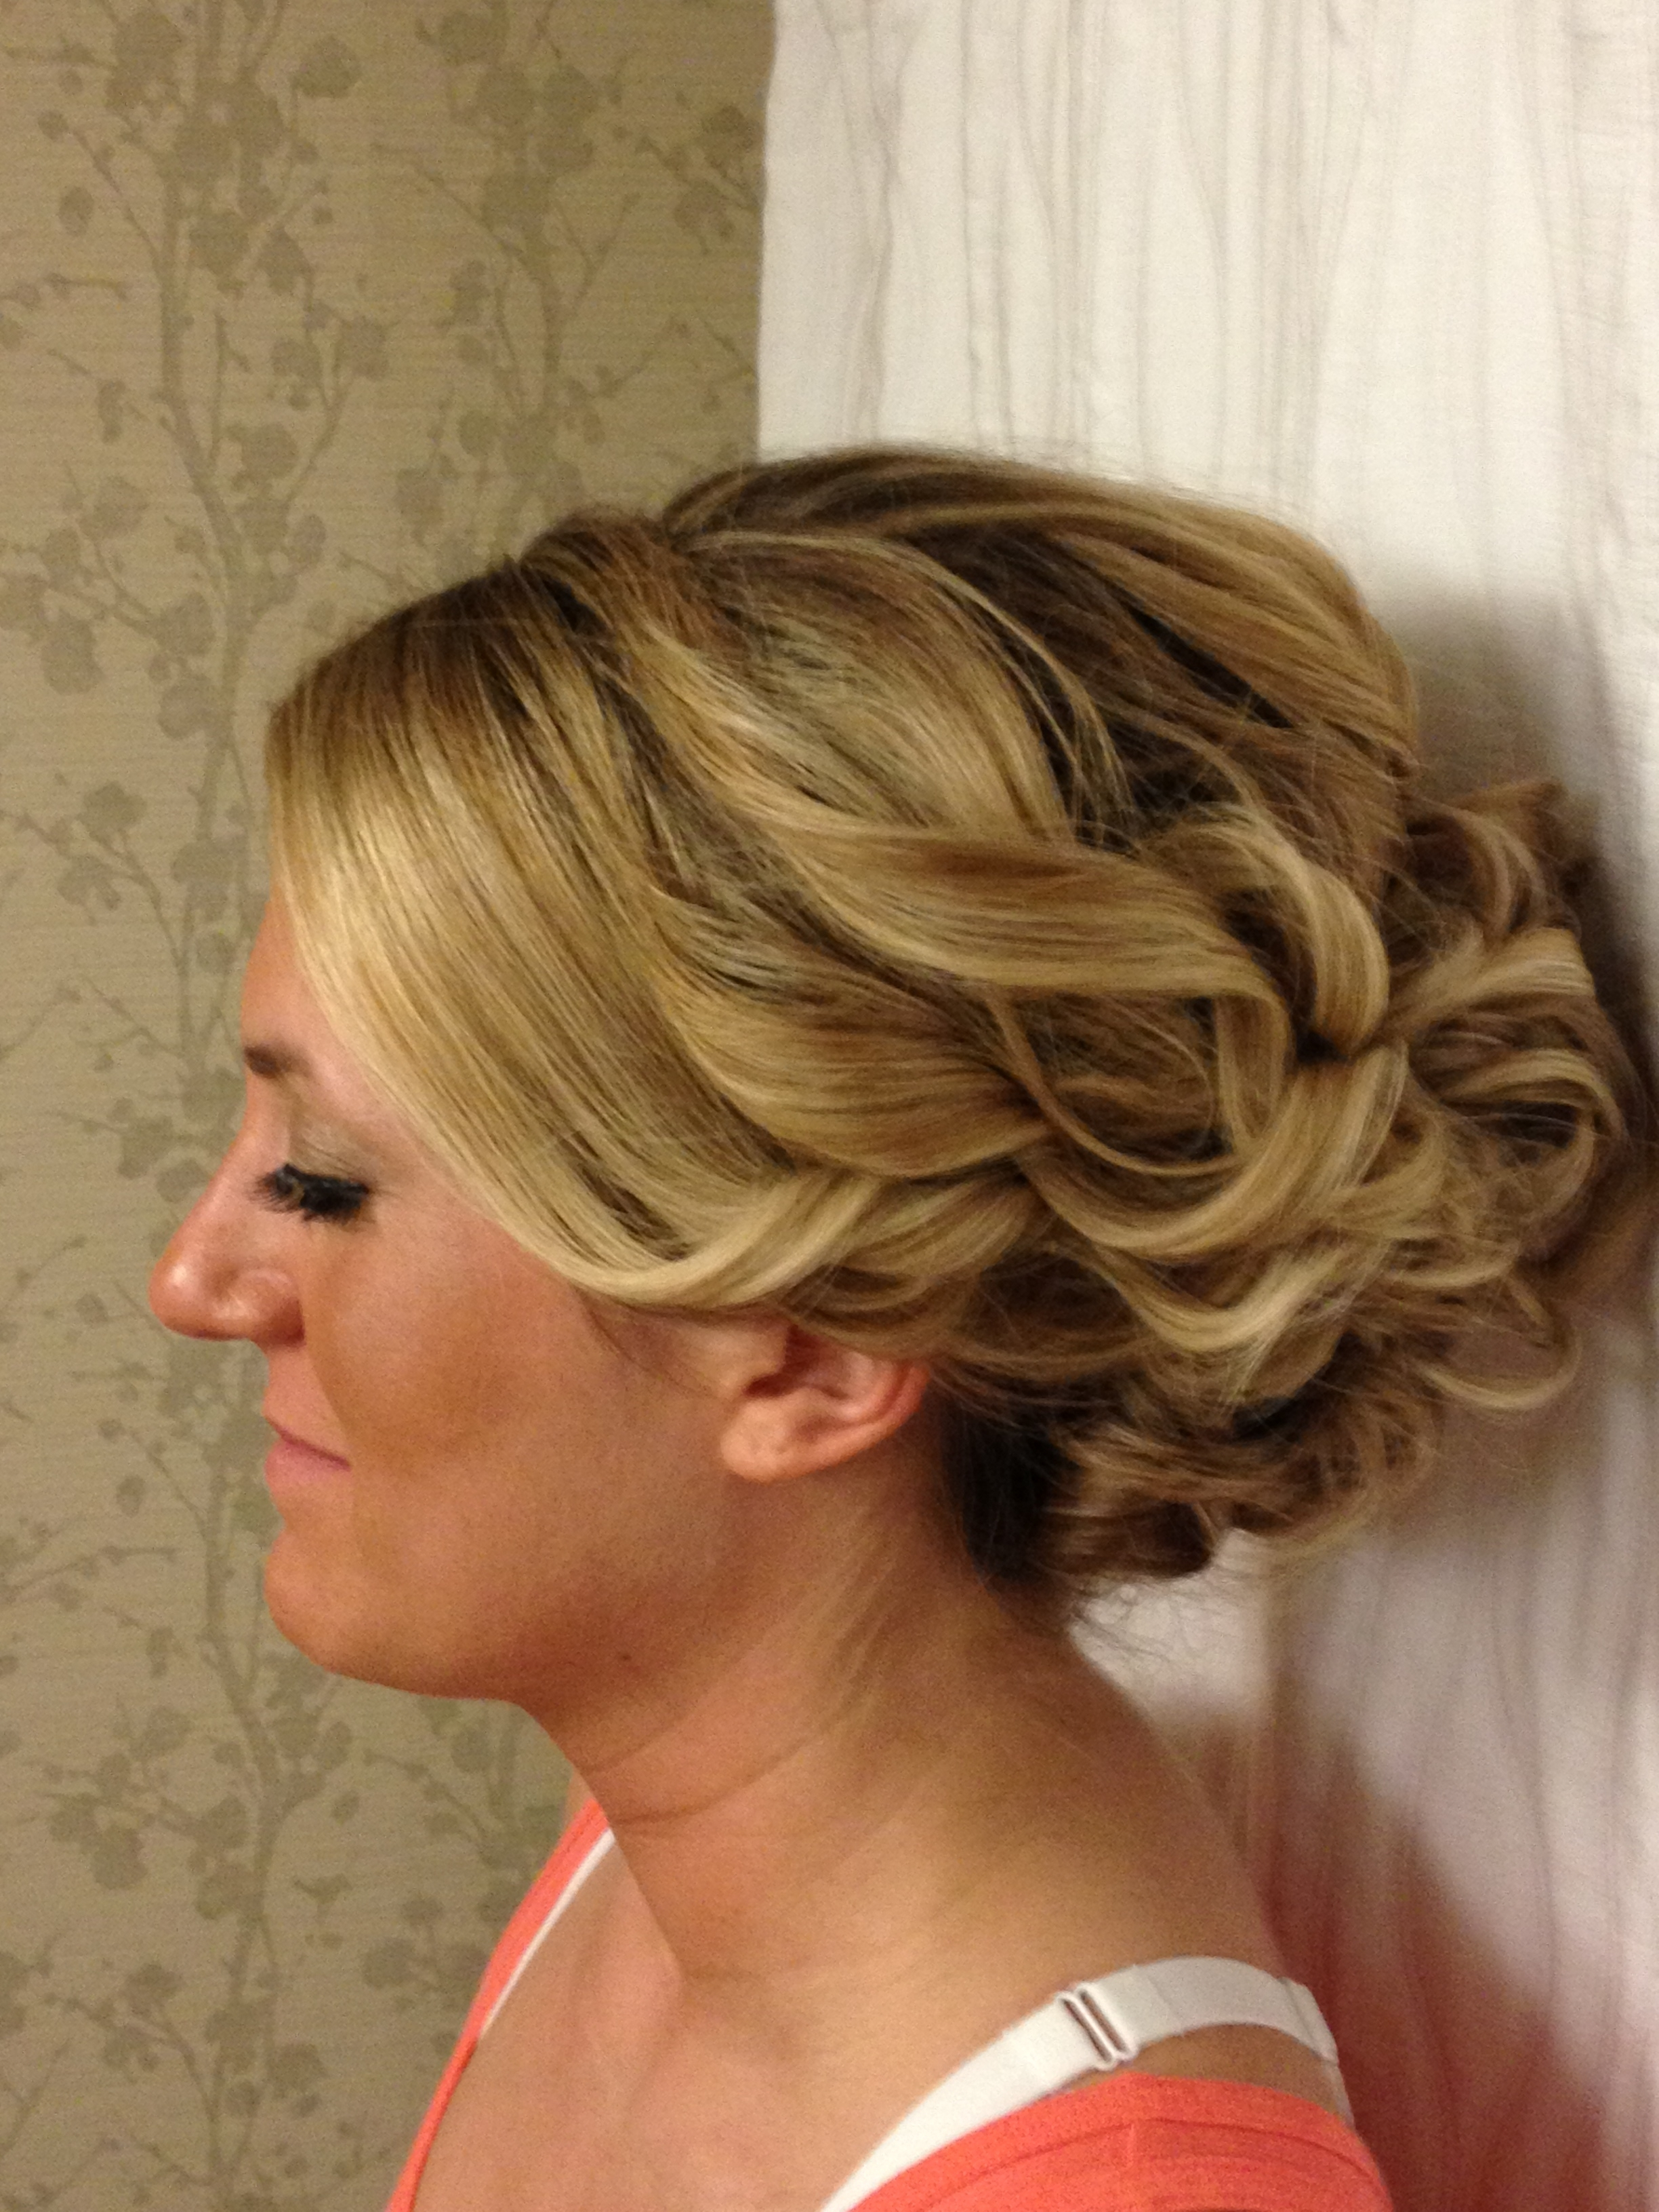 Hairstyles Updos Tumblr Updo For Prom Long Thick Impressive Hair Intended For Updo Hairstyles For Thick Hair (View 10 of 15)